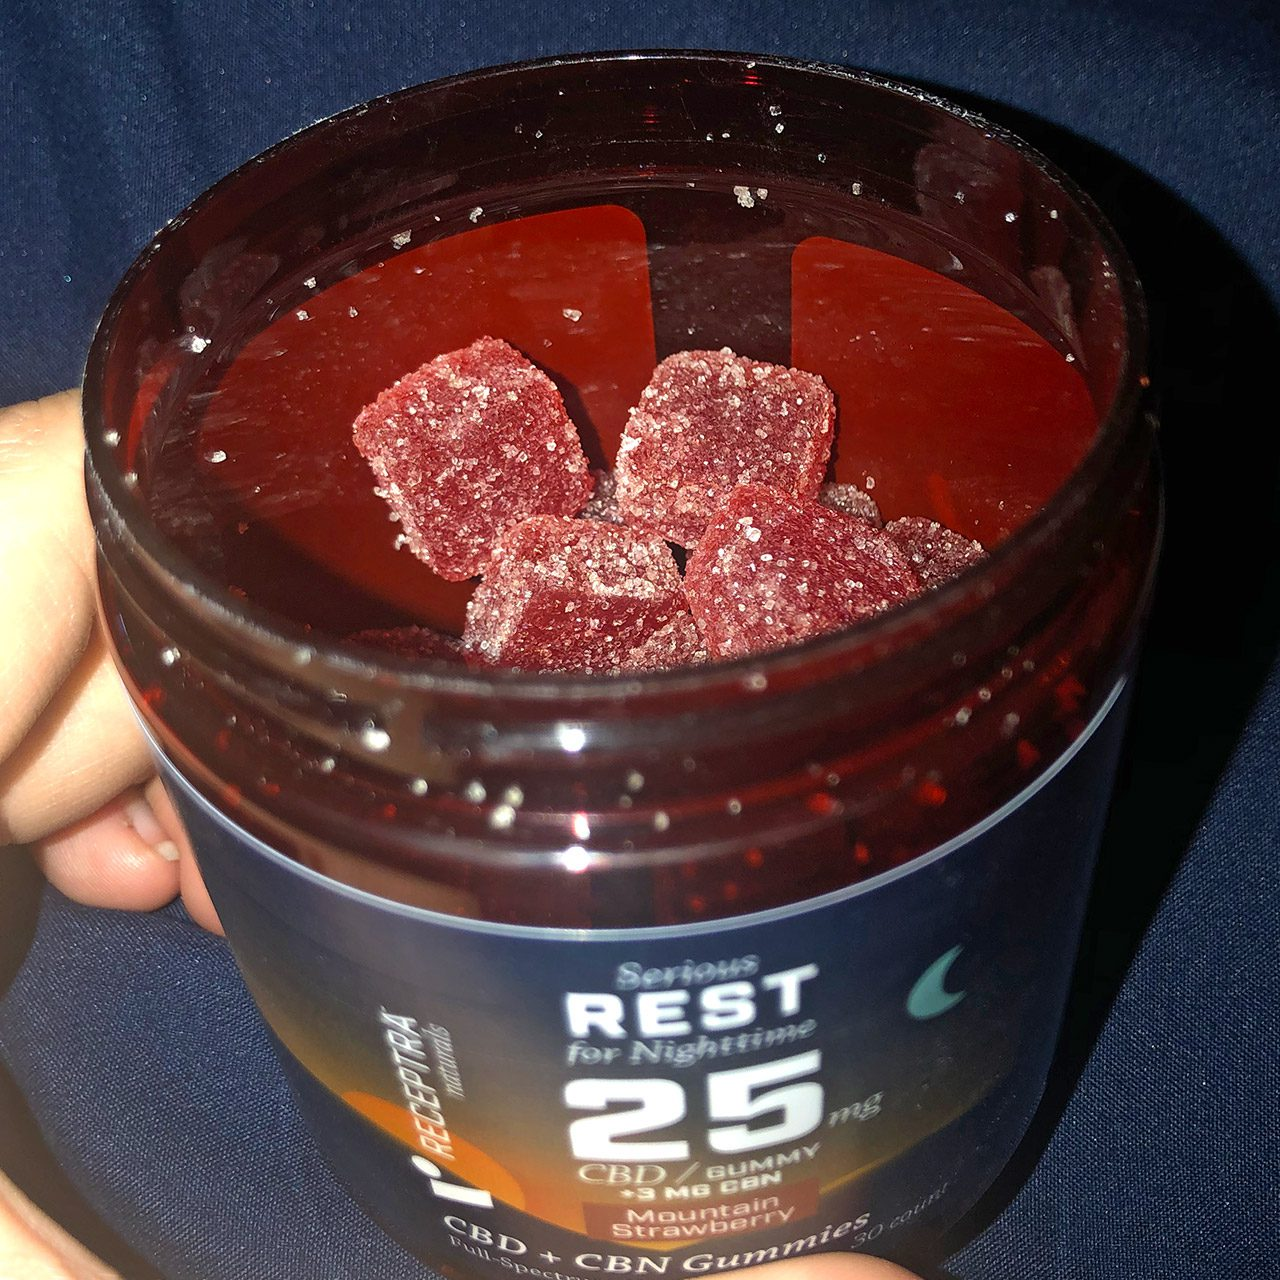 Receptra Naturals Serious Rest Gummies Review: CBD Gummies for Sleep